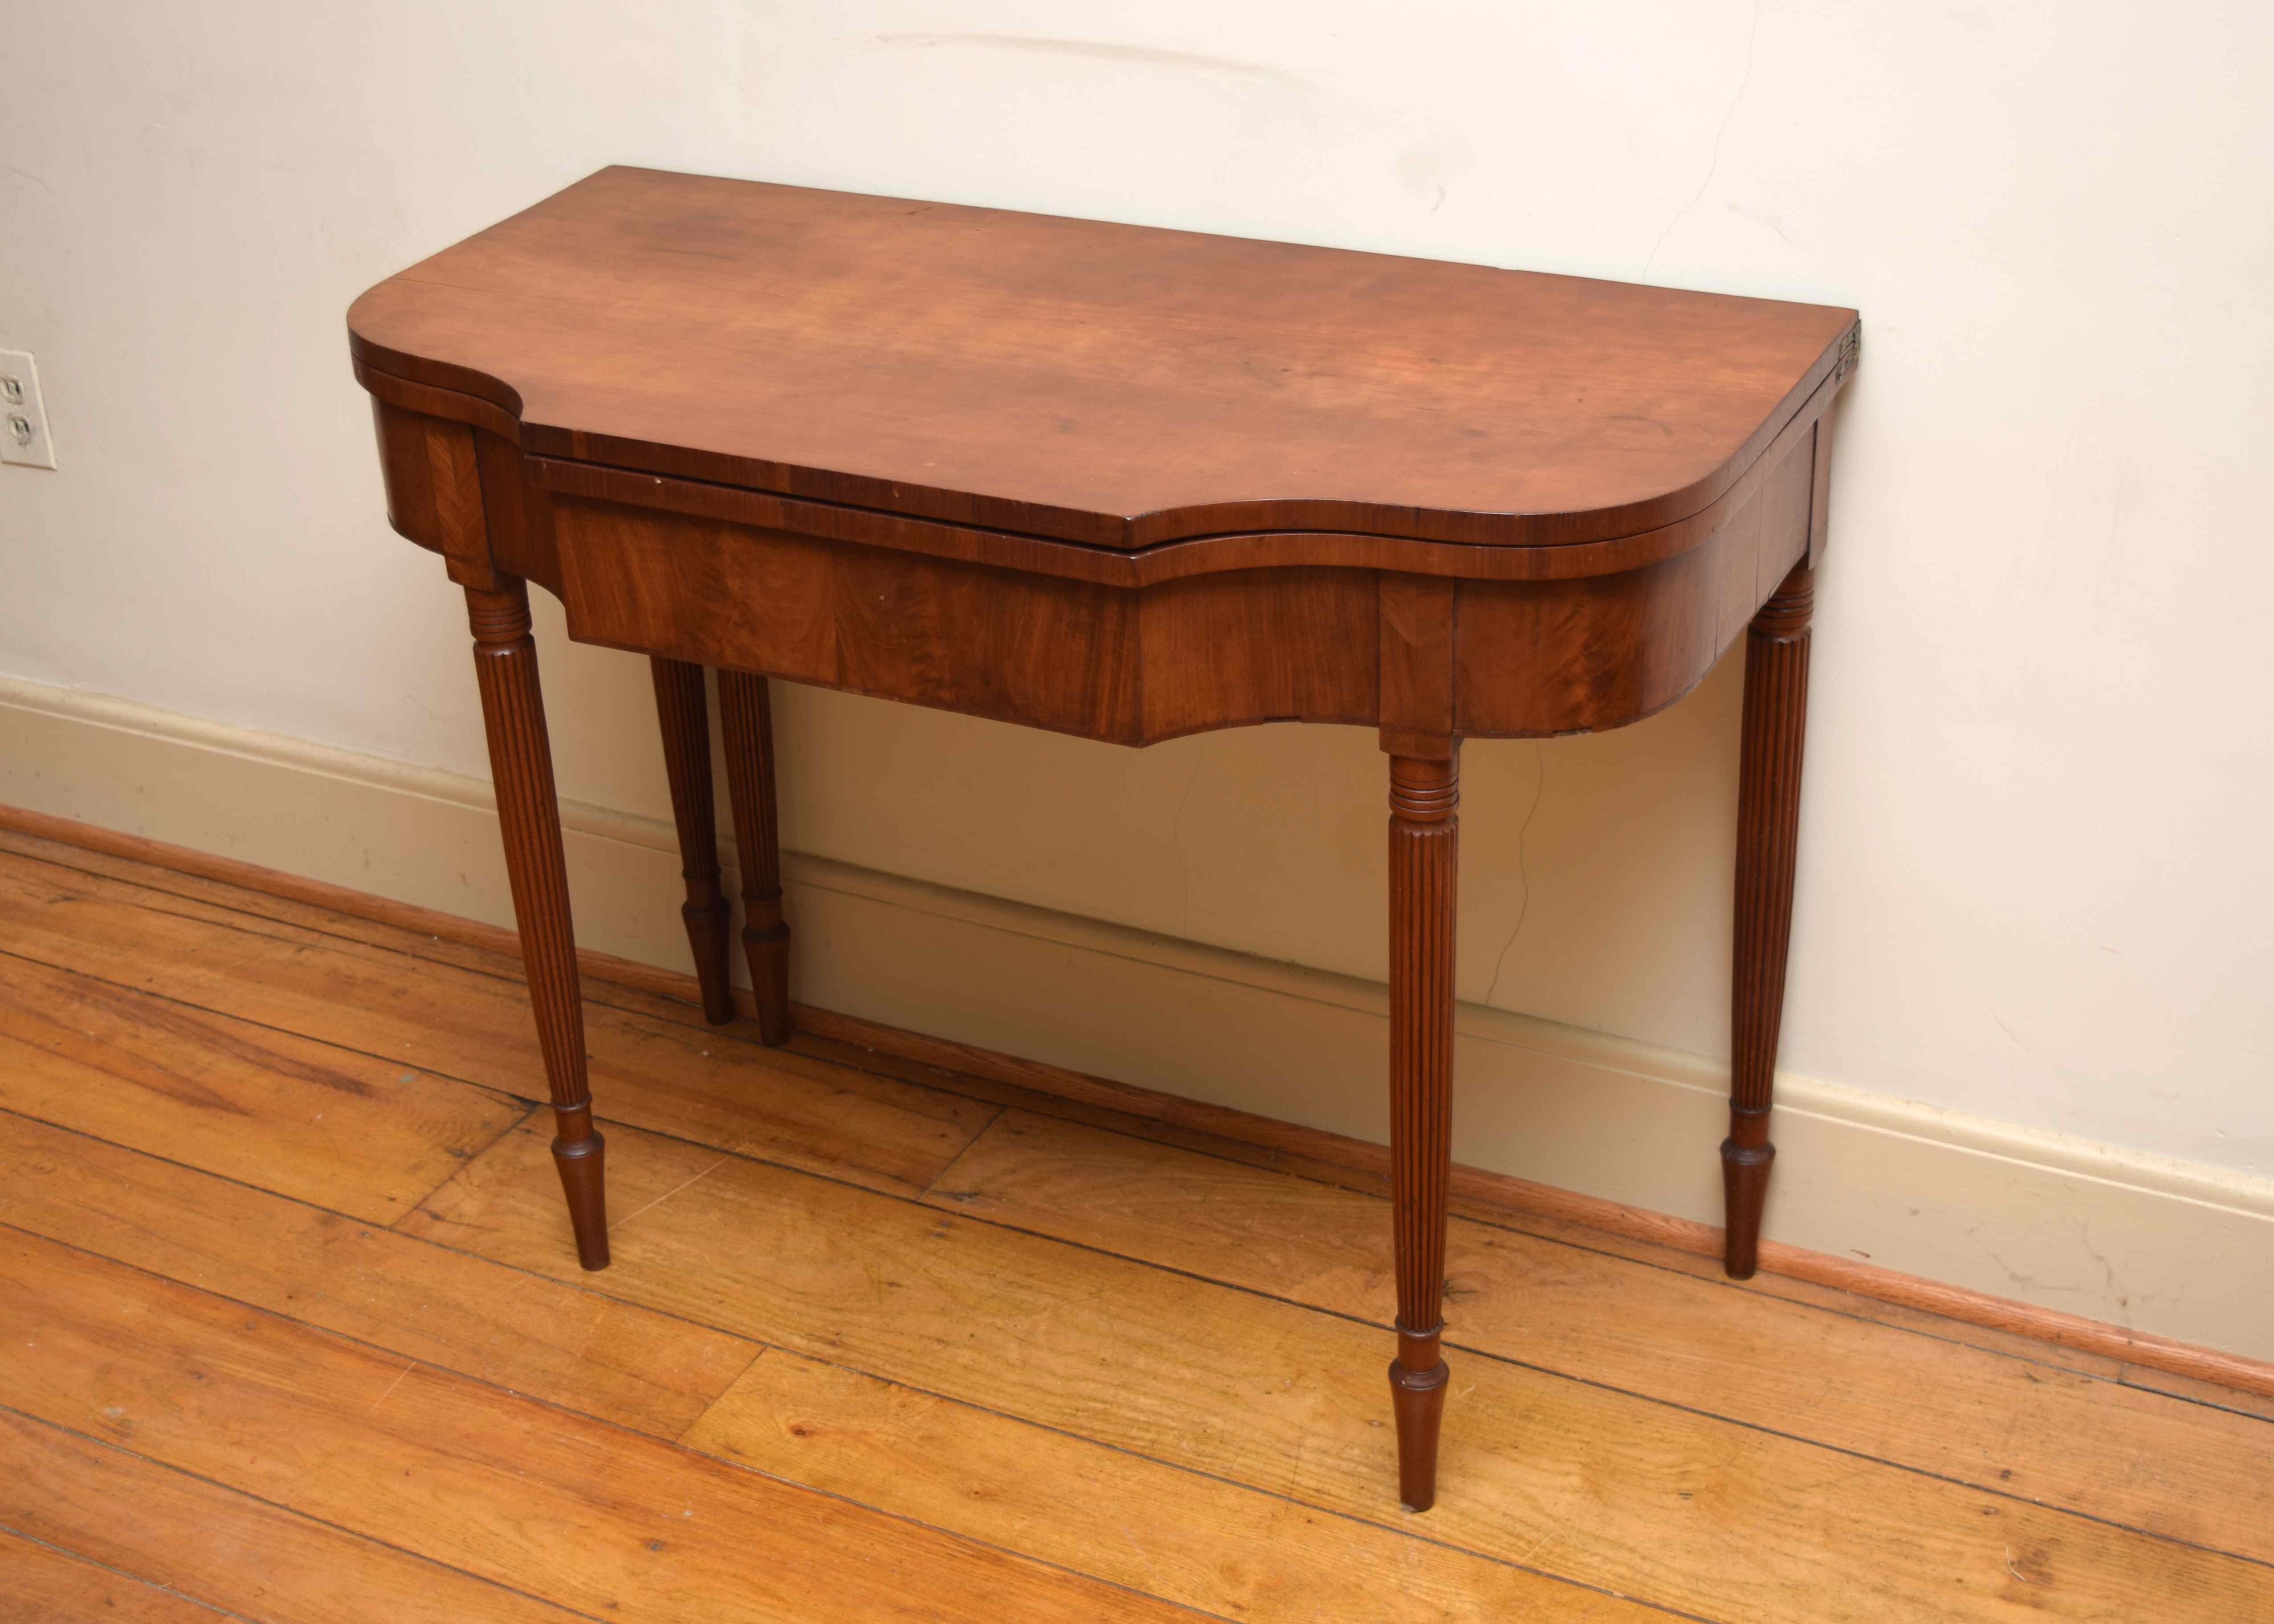 Antique Burled Walnut Game Table